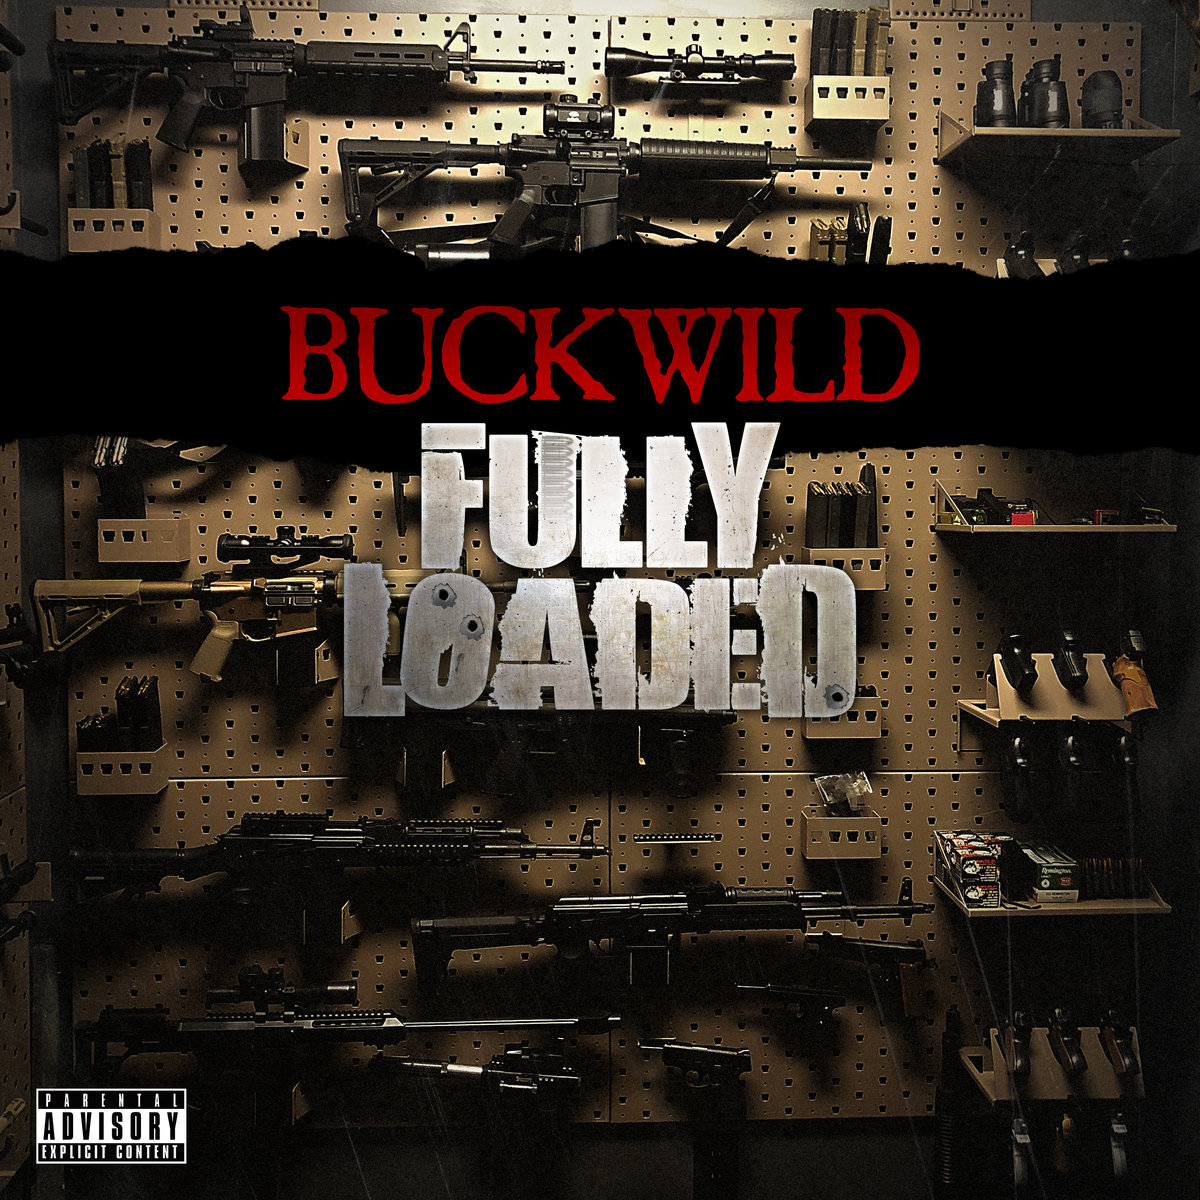 Fully_loaded_buckwild